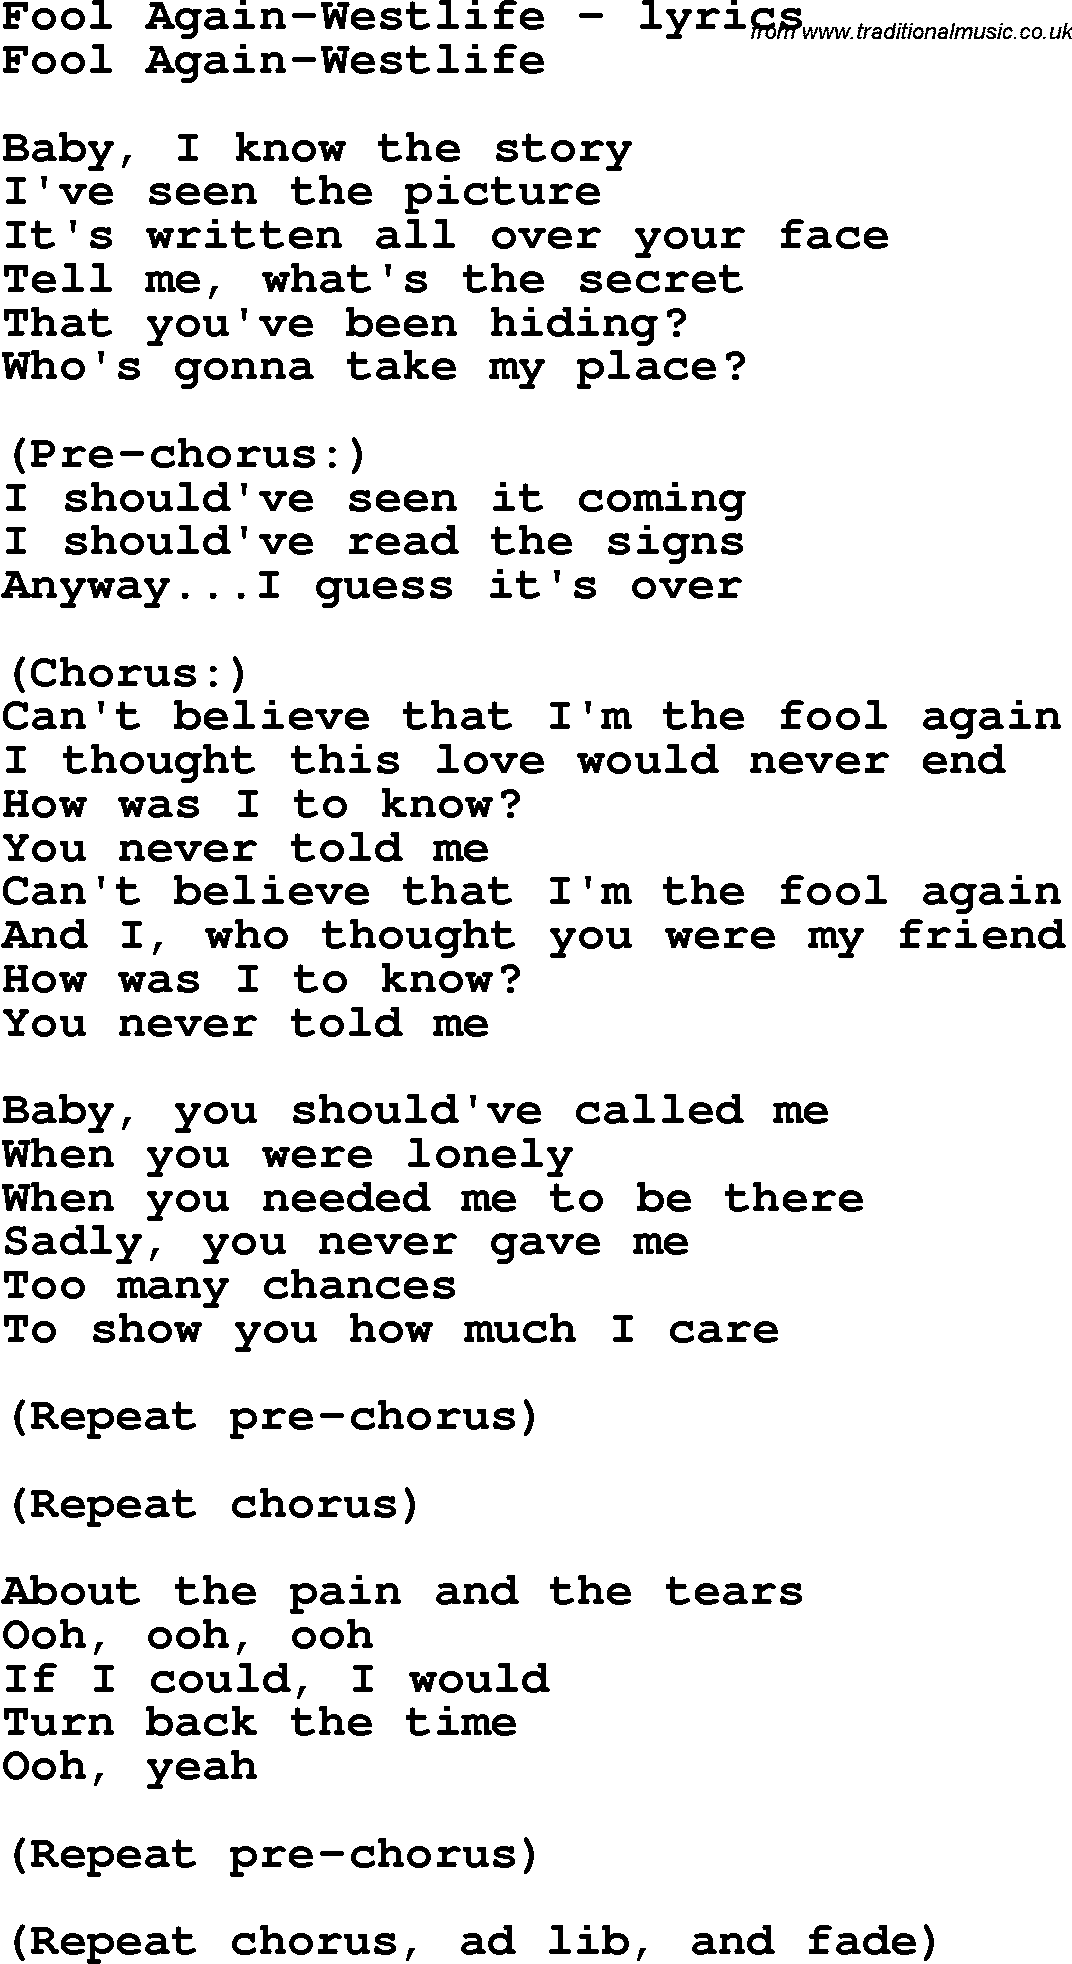 teach me how to love again lyrics